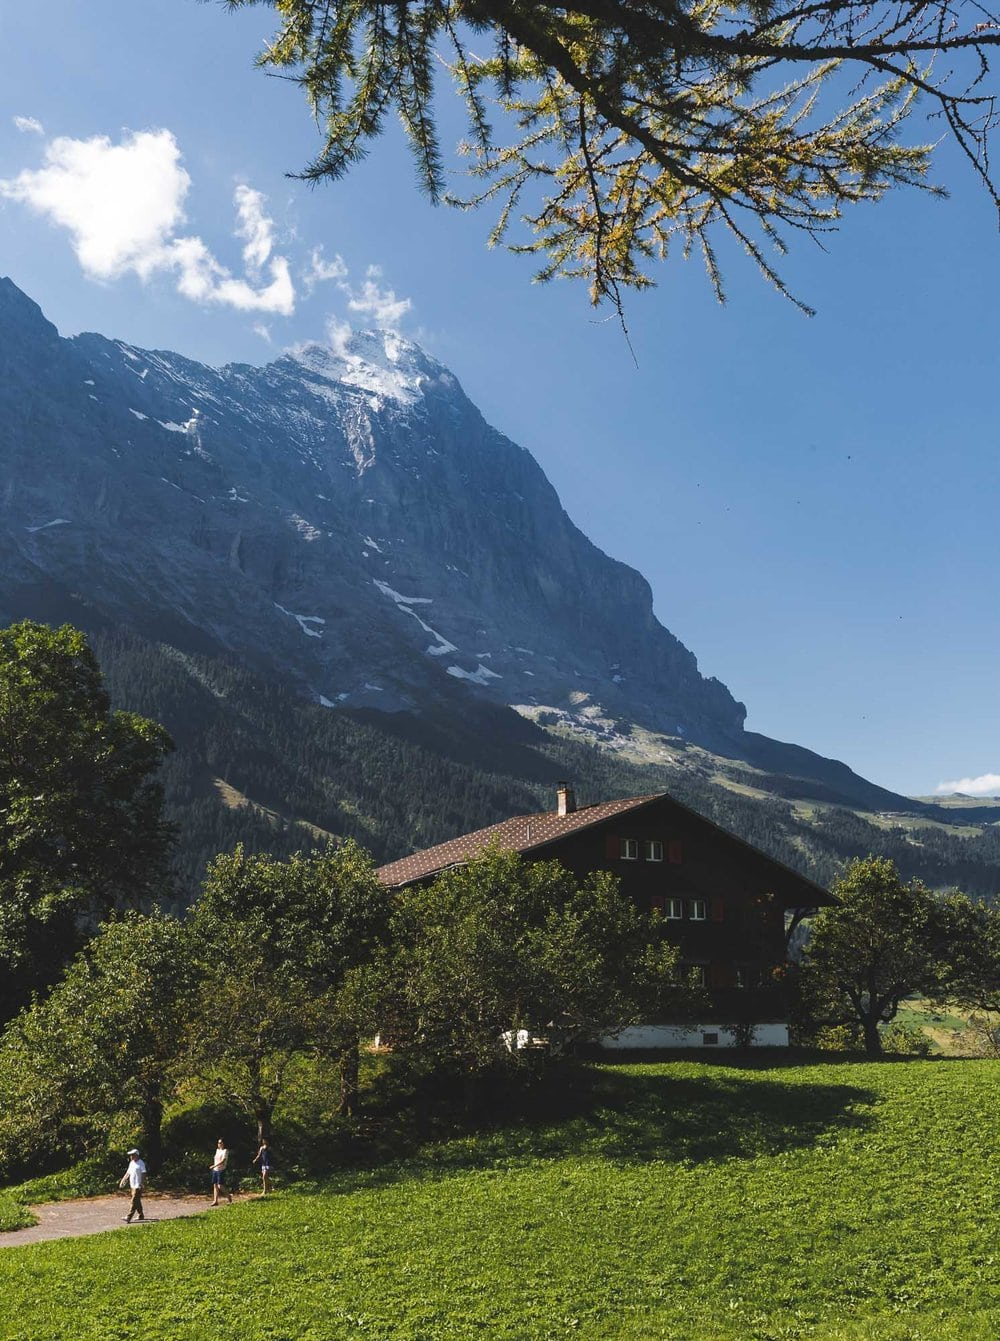 Hiking to the Eiger in Grindelwald